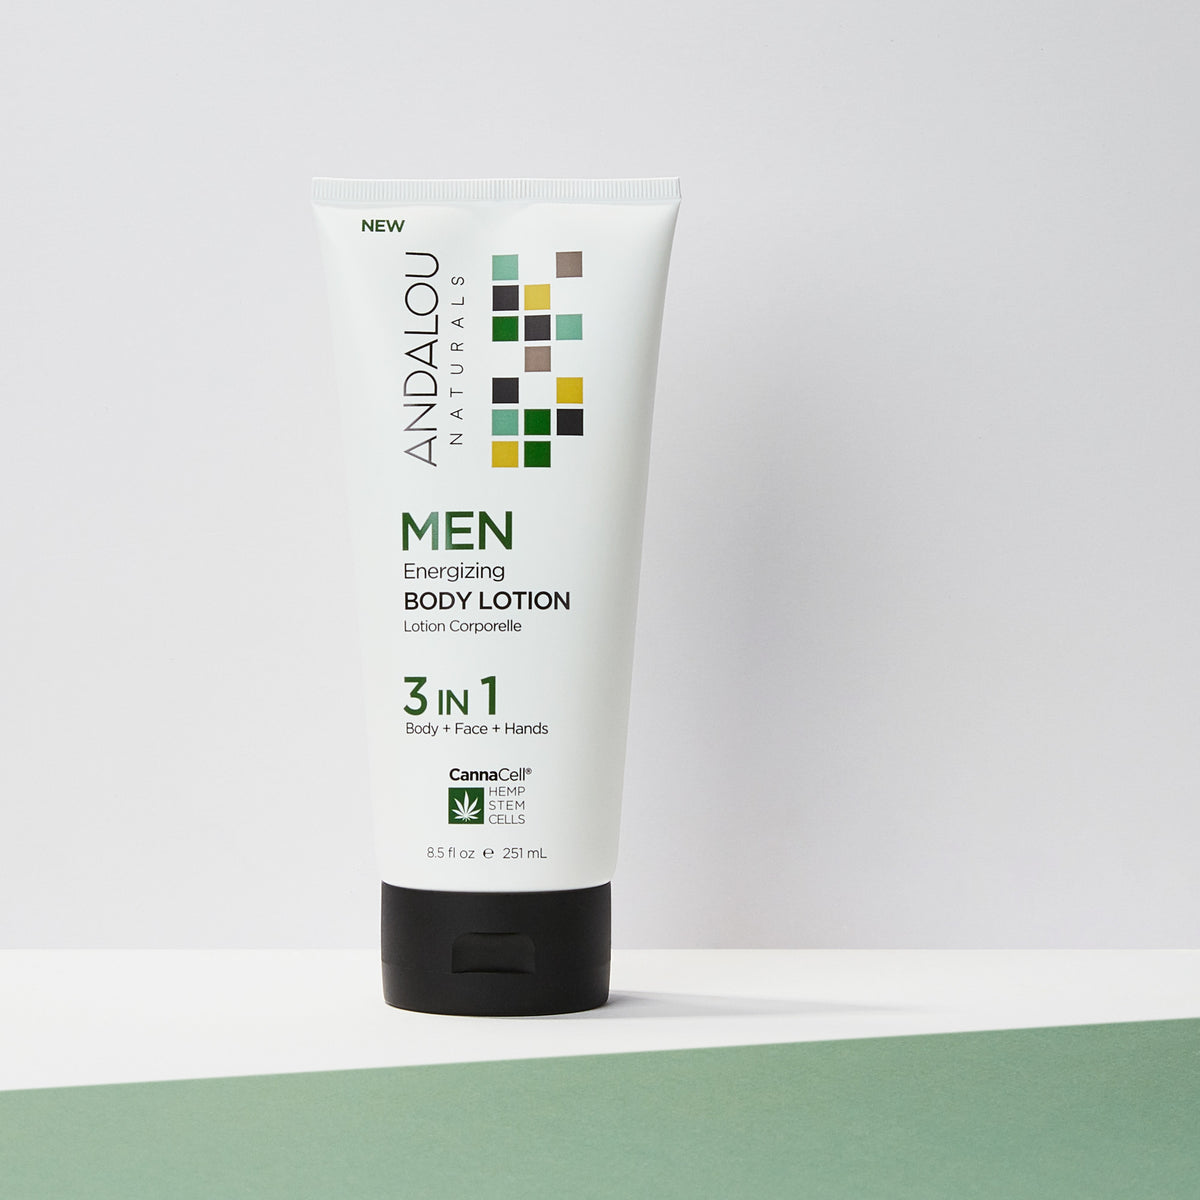 MEN Energizing Body Lotion 3 IN 1 - Andalou Naturals US